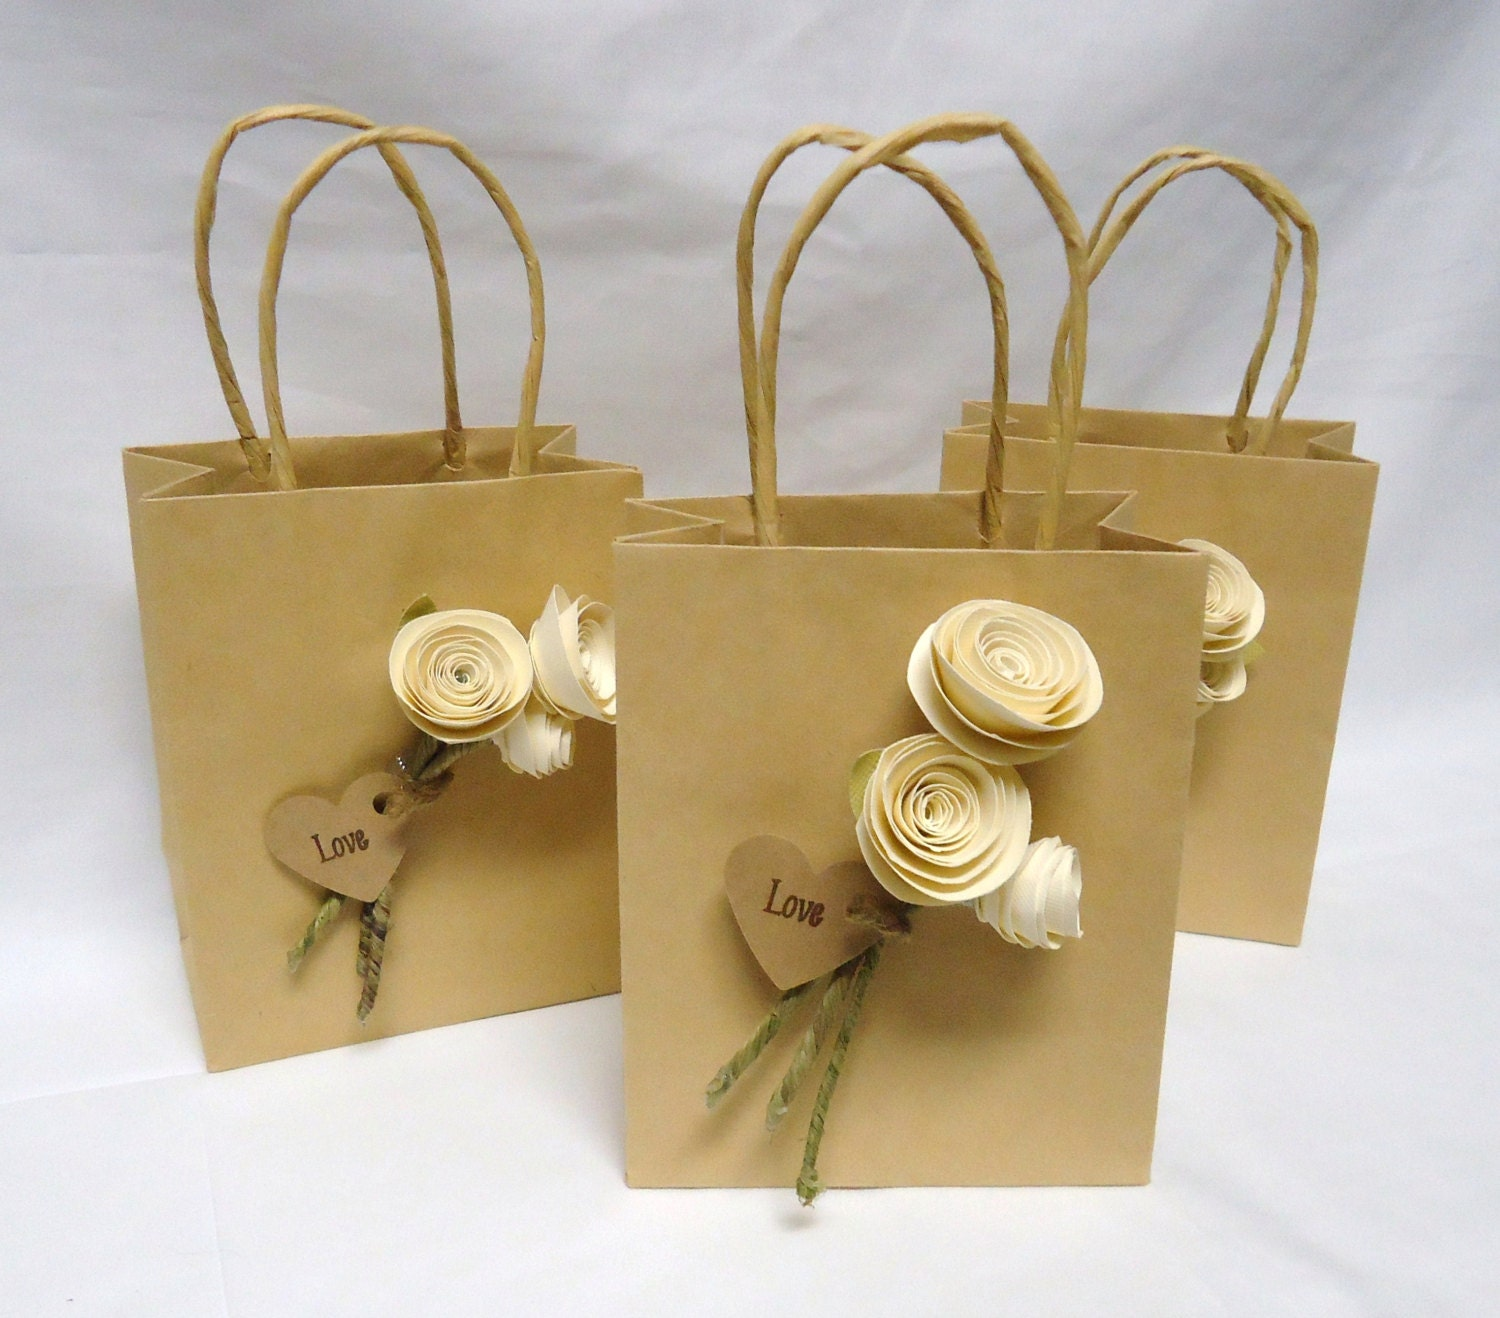 Personalized Wedding Favor Bags And Boxes : Wedding favor bags. wedding gift bags. gift bags. Paper rose wedding ...